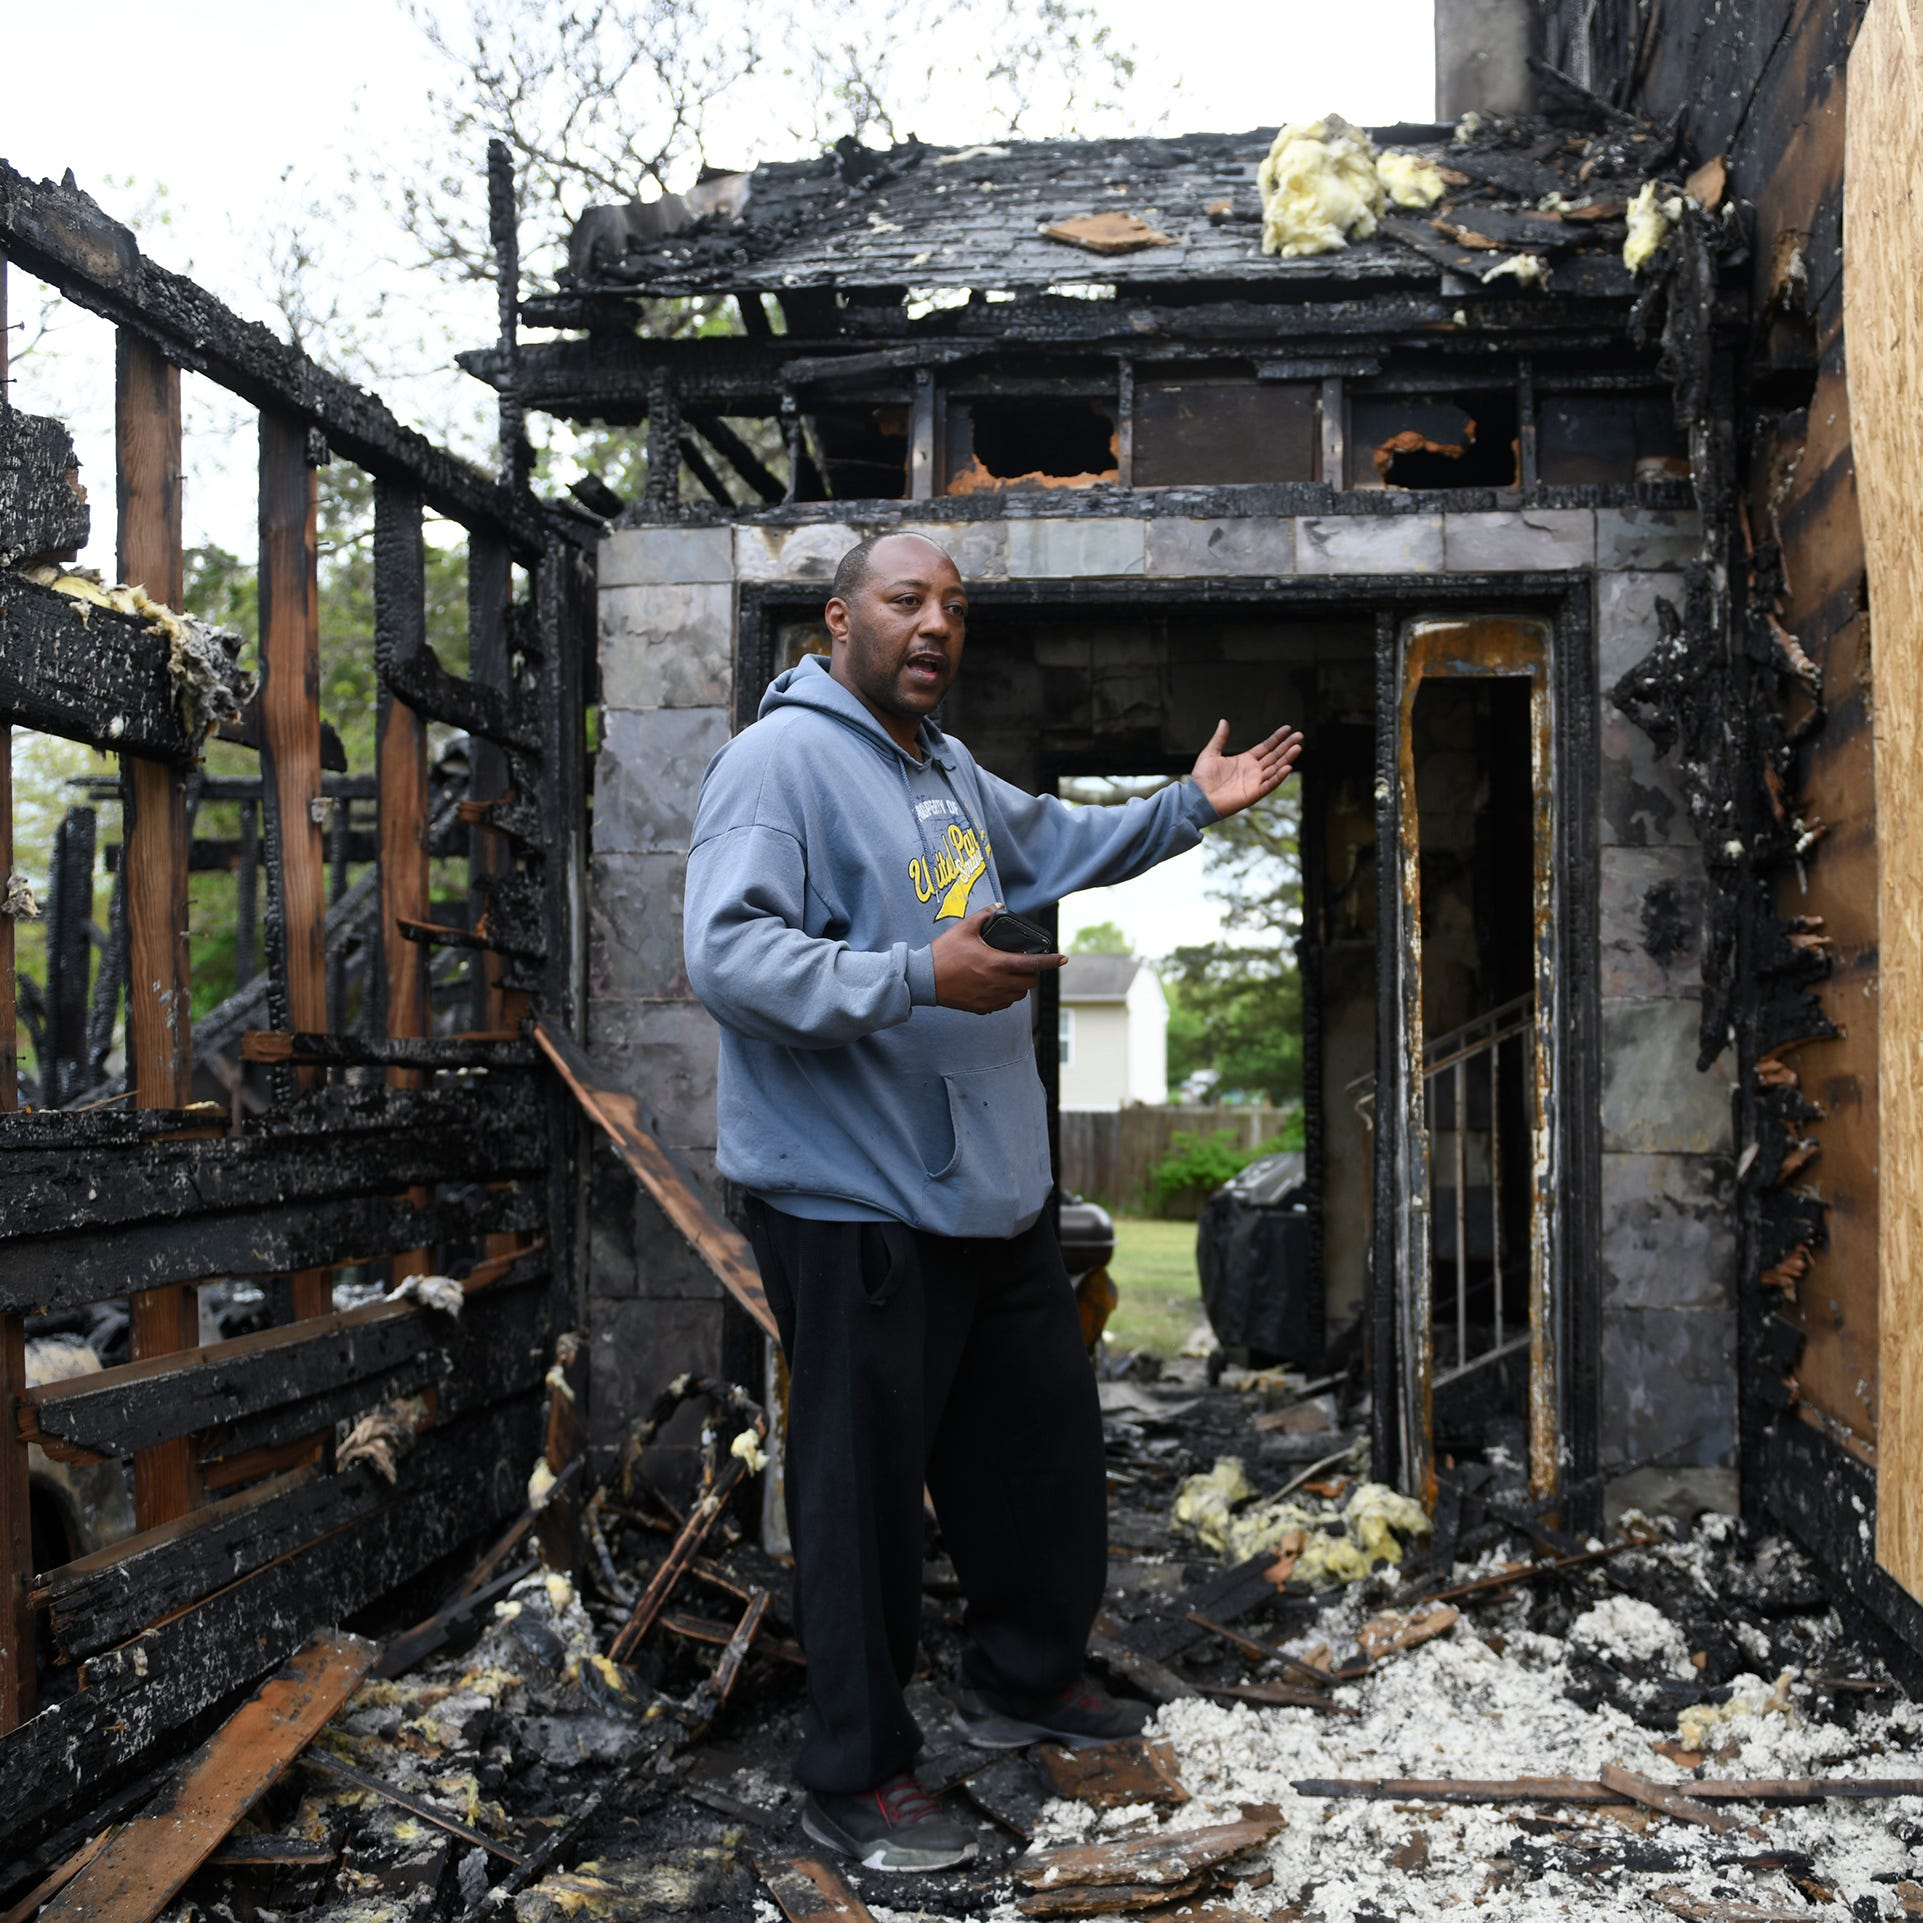 Video doorbell wakes up South Jersey couple during intense fire